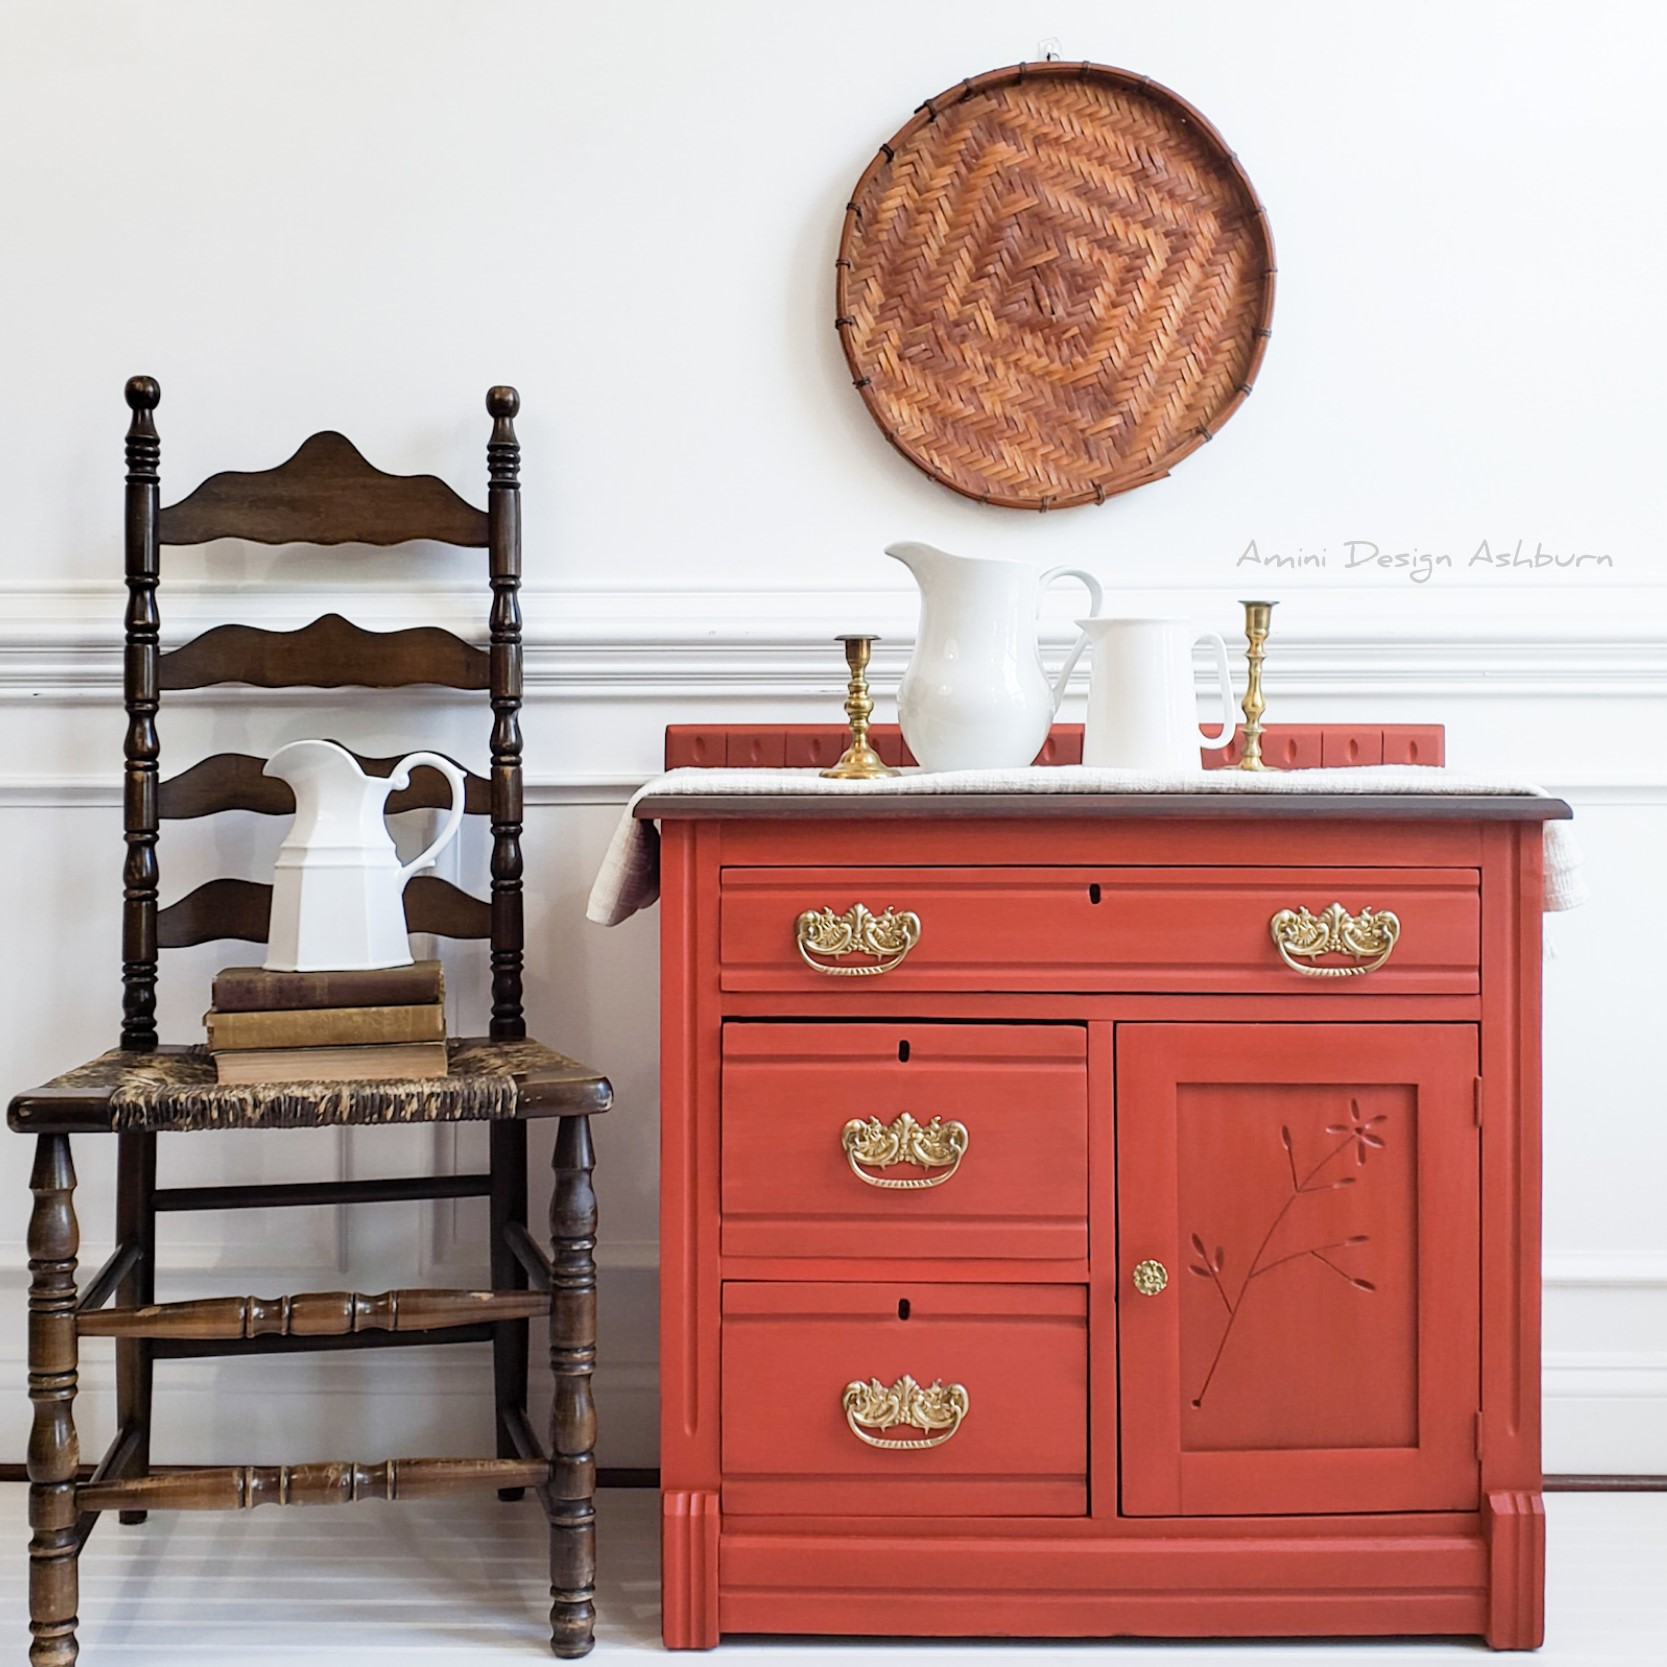 Farmhouse Storage Cabinet in Sparklers with Black Wax